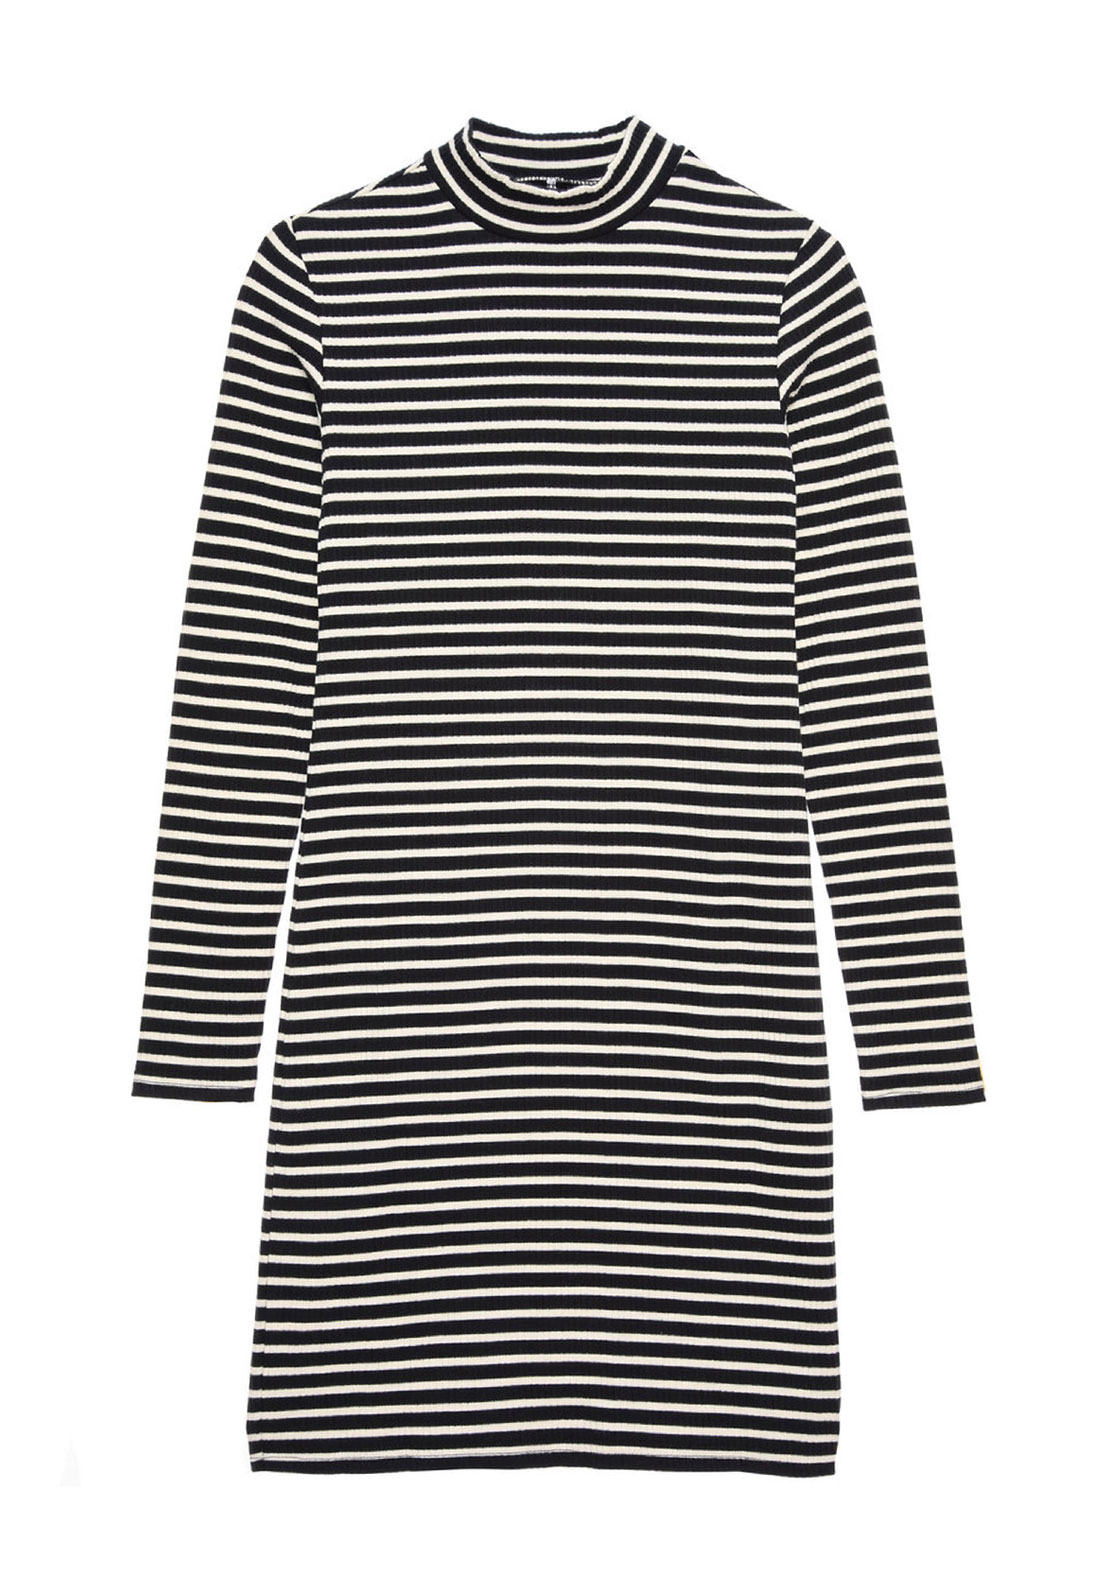 Name It Millie Striped Dress, Black and White